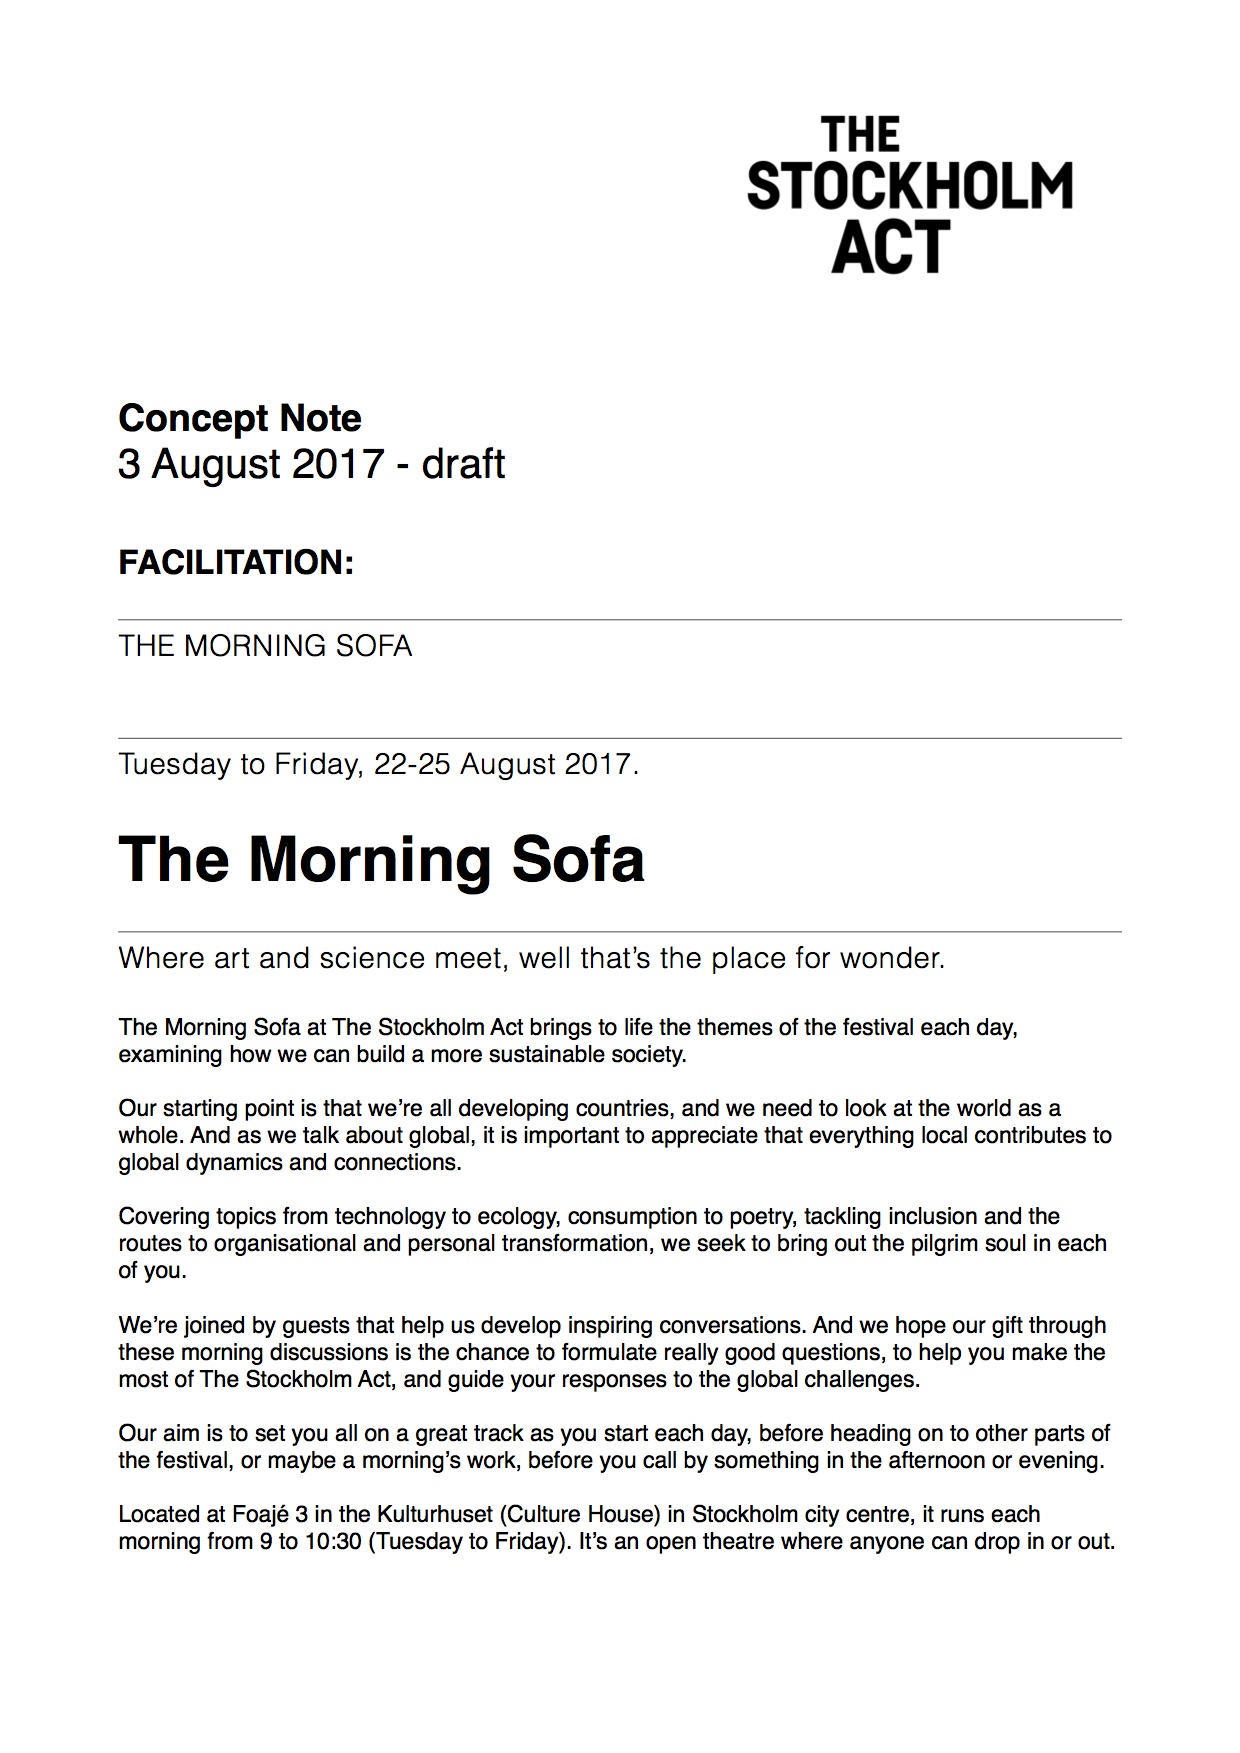 Morningsofa_conceptnote_030817 frontpageonly.jpg